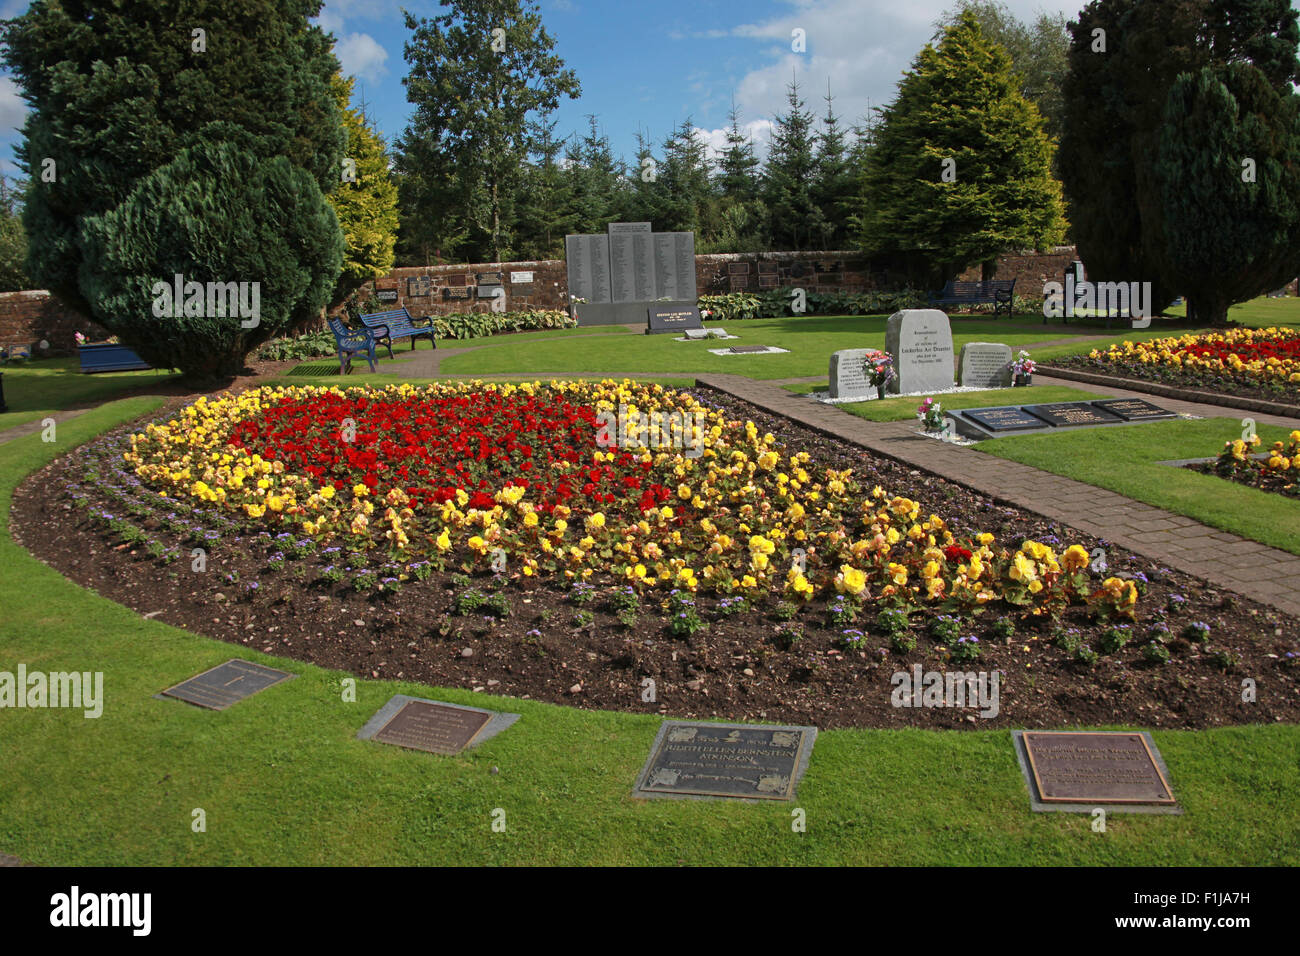 side View,Scotland,Lodge,Visitors,Centre,DLVC,Trust,Lockerbie,Memorial,Remembrance,Scotland,Victims,Pan,Am,PanAm,flight,103,bomb,bombing,terrorist,December,1988,attack,crash,dead,site,21/12/1988,270,victims,Scottish,Town,conspiracy,blast,Tundergarth,Room,garden,of,Dryfesdale,Cemetery,New York,GoTonySmith,Lodge,Visitors,Centre,DLVC,Trust,Lockerbie,Memorial,Scotland,Victims,Pan,Am,PanAm,flight,103,bomb,bombing,terrorist,December,1988,attack,crash,dead,site,21/12/1988,270,victims,Scottish,Town,conspiracy,blast,Tundergarth,Room,garden,of,Dryfesdale,Cemetery,news,Cultural,understanding,remembering,innocent,transatlantic,Frankfurt,Detroit,Libyan,Libya,Colonel Muammar Gaddafi,civil,case,compensation,terrorism,PA103,30,30years,years,Syracuse,University,SU,family,collections,Story,Archive,Archives,40,35,Timeline,saga,disaster,air,Scholars,program,programs,remembrance,Clipper Maid of the Seas,N739PA,Boeing,727,plane,aircraft,Scotland,UK,United Kingdom,GB,Great Britain,resting,place,Buy Pictures of,Buy Images Of,New York,al megrahi,30 Years